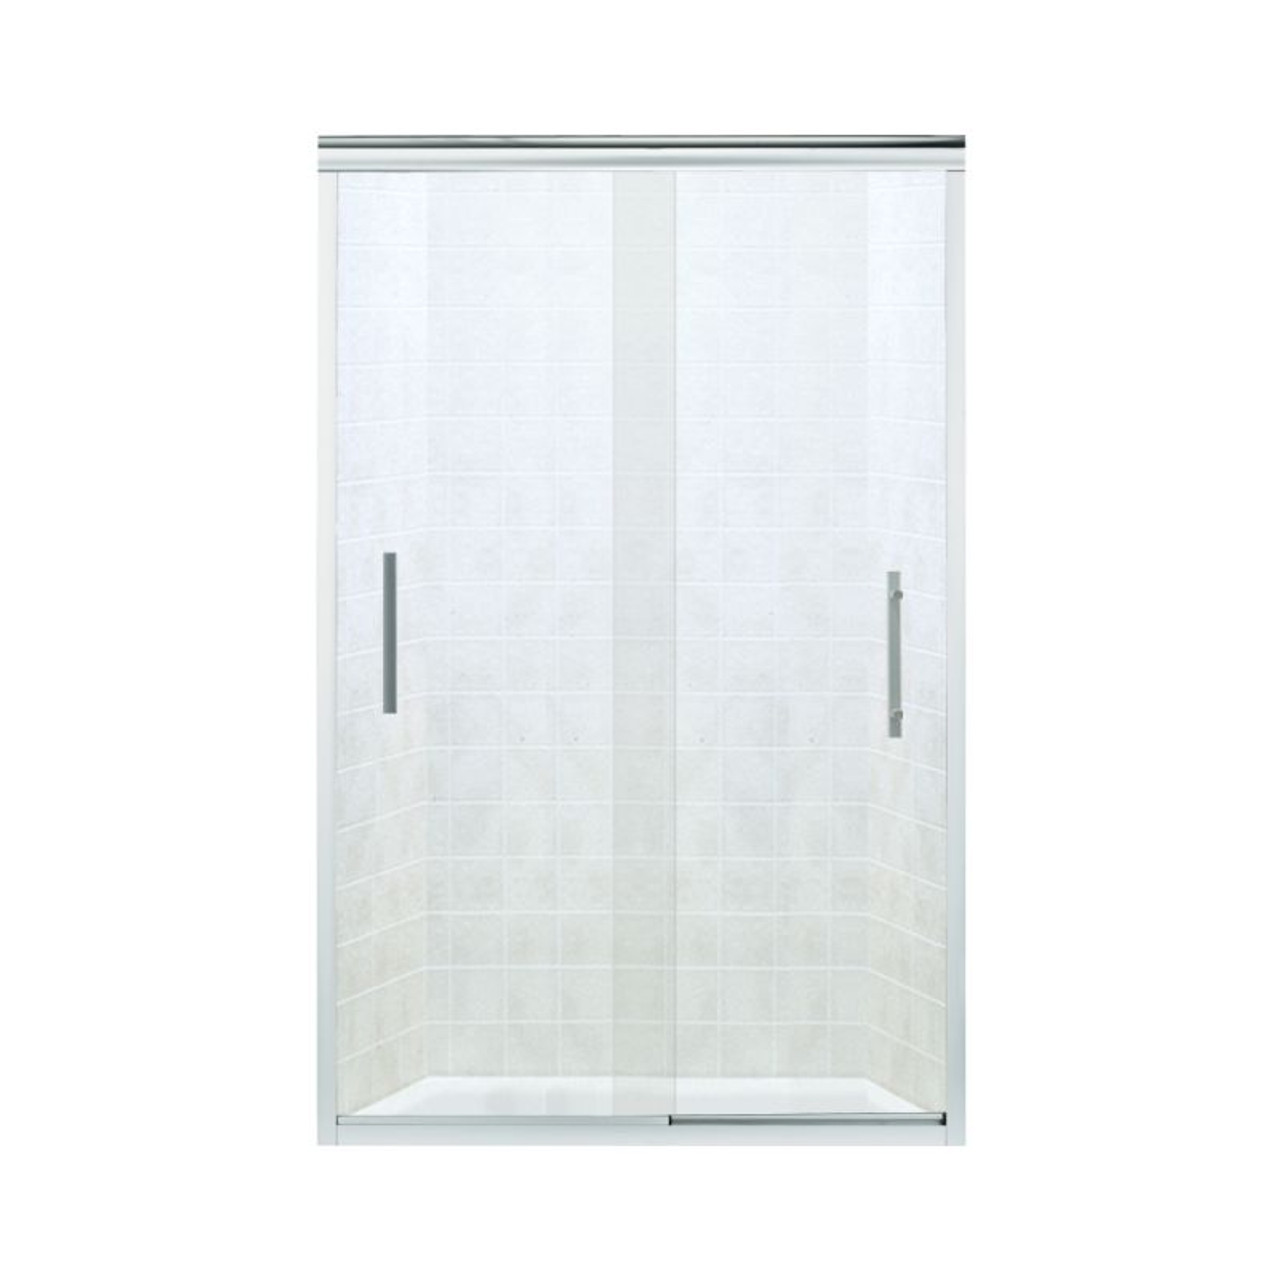 Sterling 547808 48s G05 Finesse 44 625 To 47 625 In X 70 0625 In Frameless Sliding Alcove Shower Door With Clear Glass